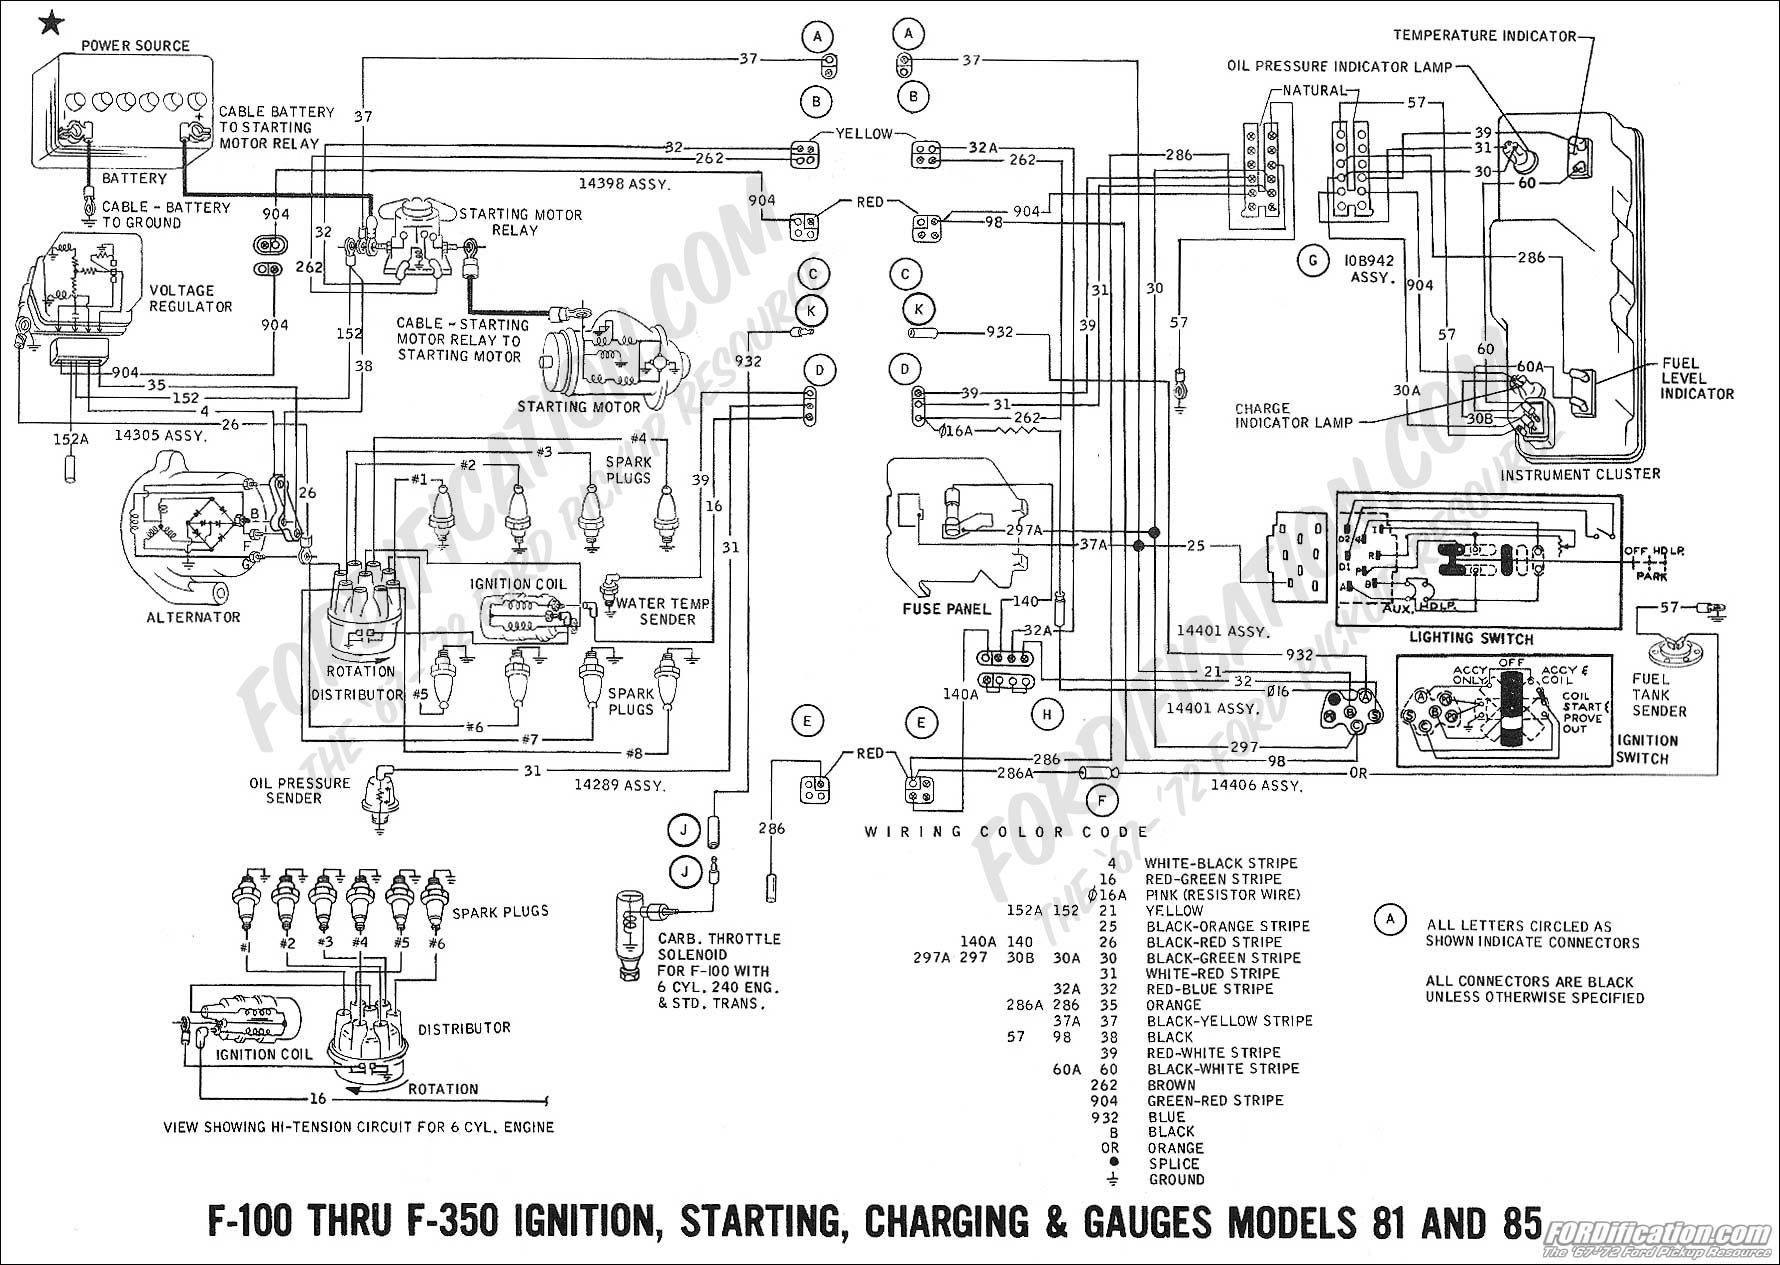 hight resolution of 1968 ford f100 ignition coil wiring diagram wiring diagram term1968 f100 wiring diagram wiring diagram post